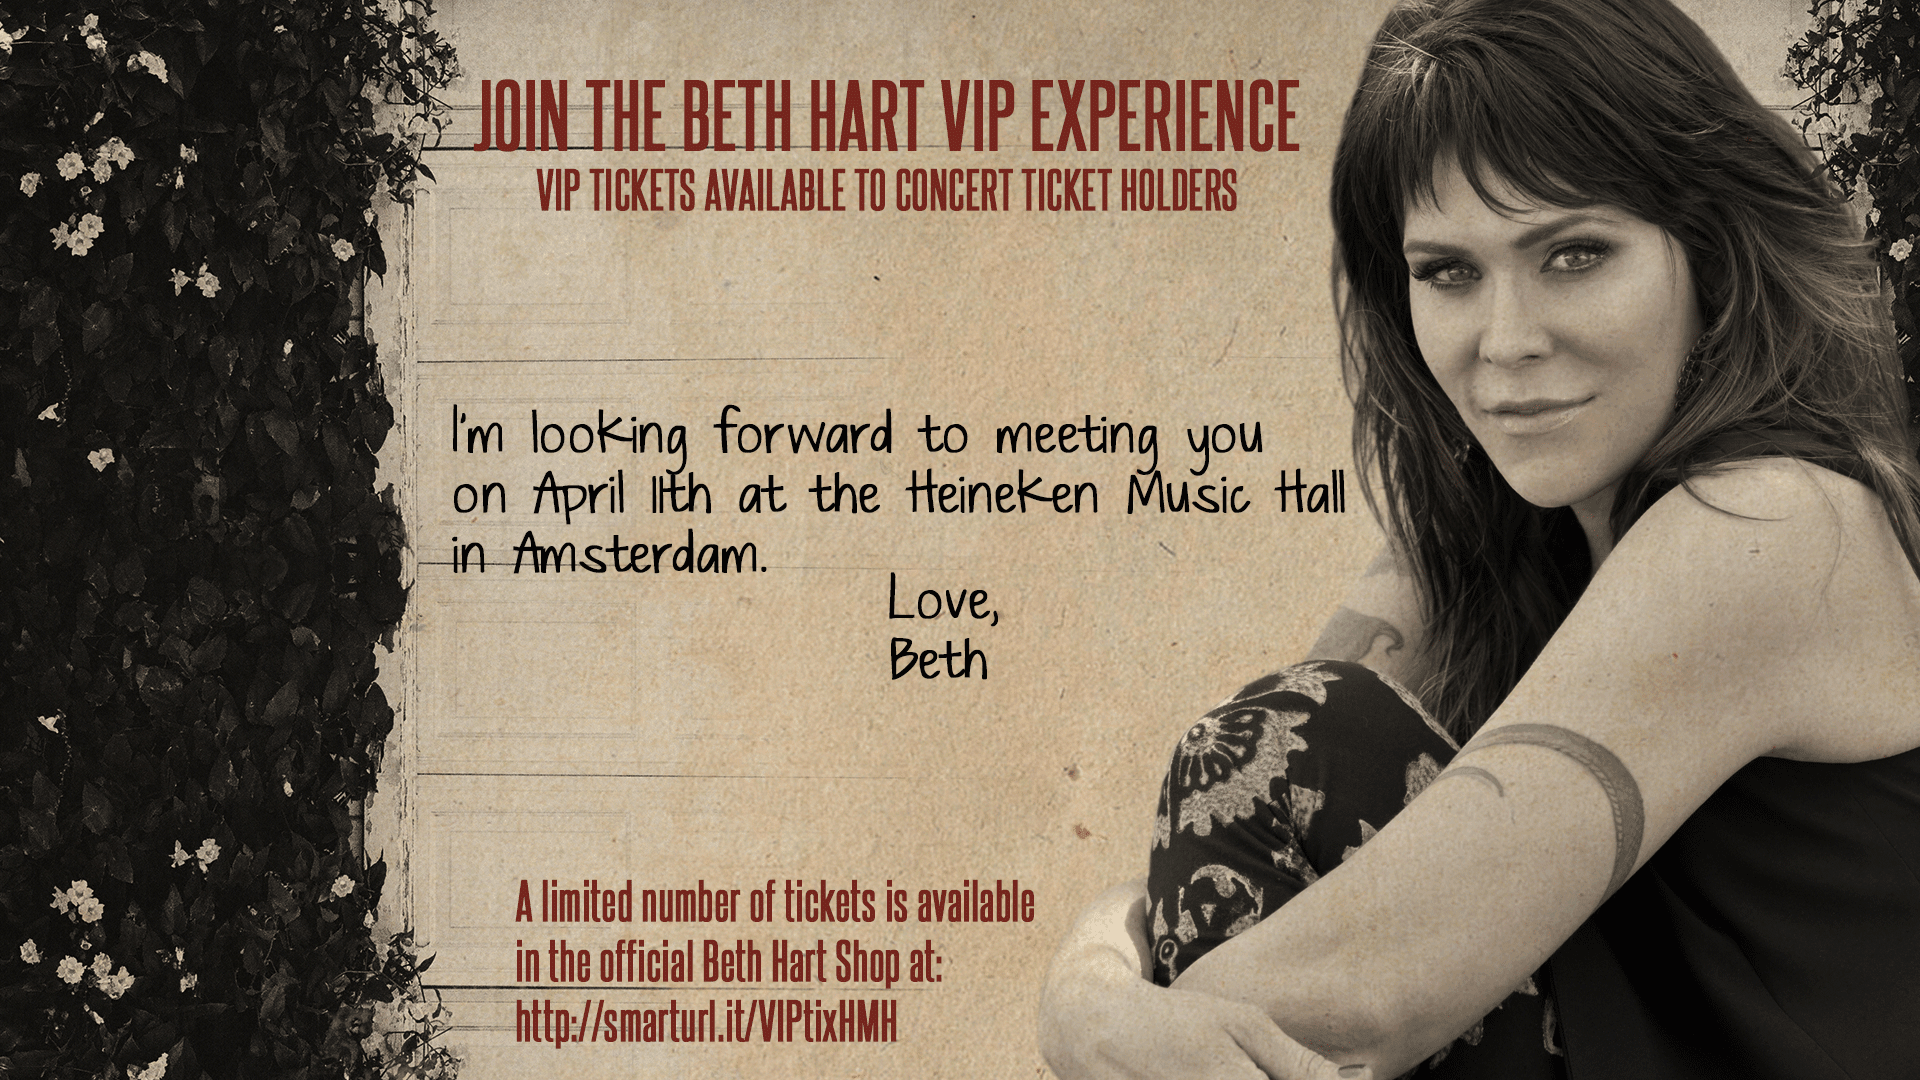 Beth Hart Official Web Site Vip Tickets Available To Amsterdam Show